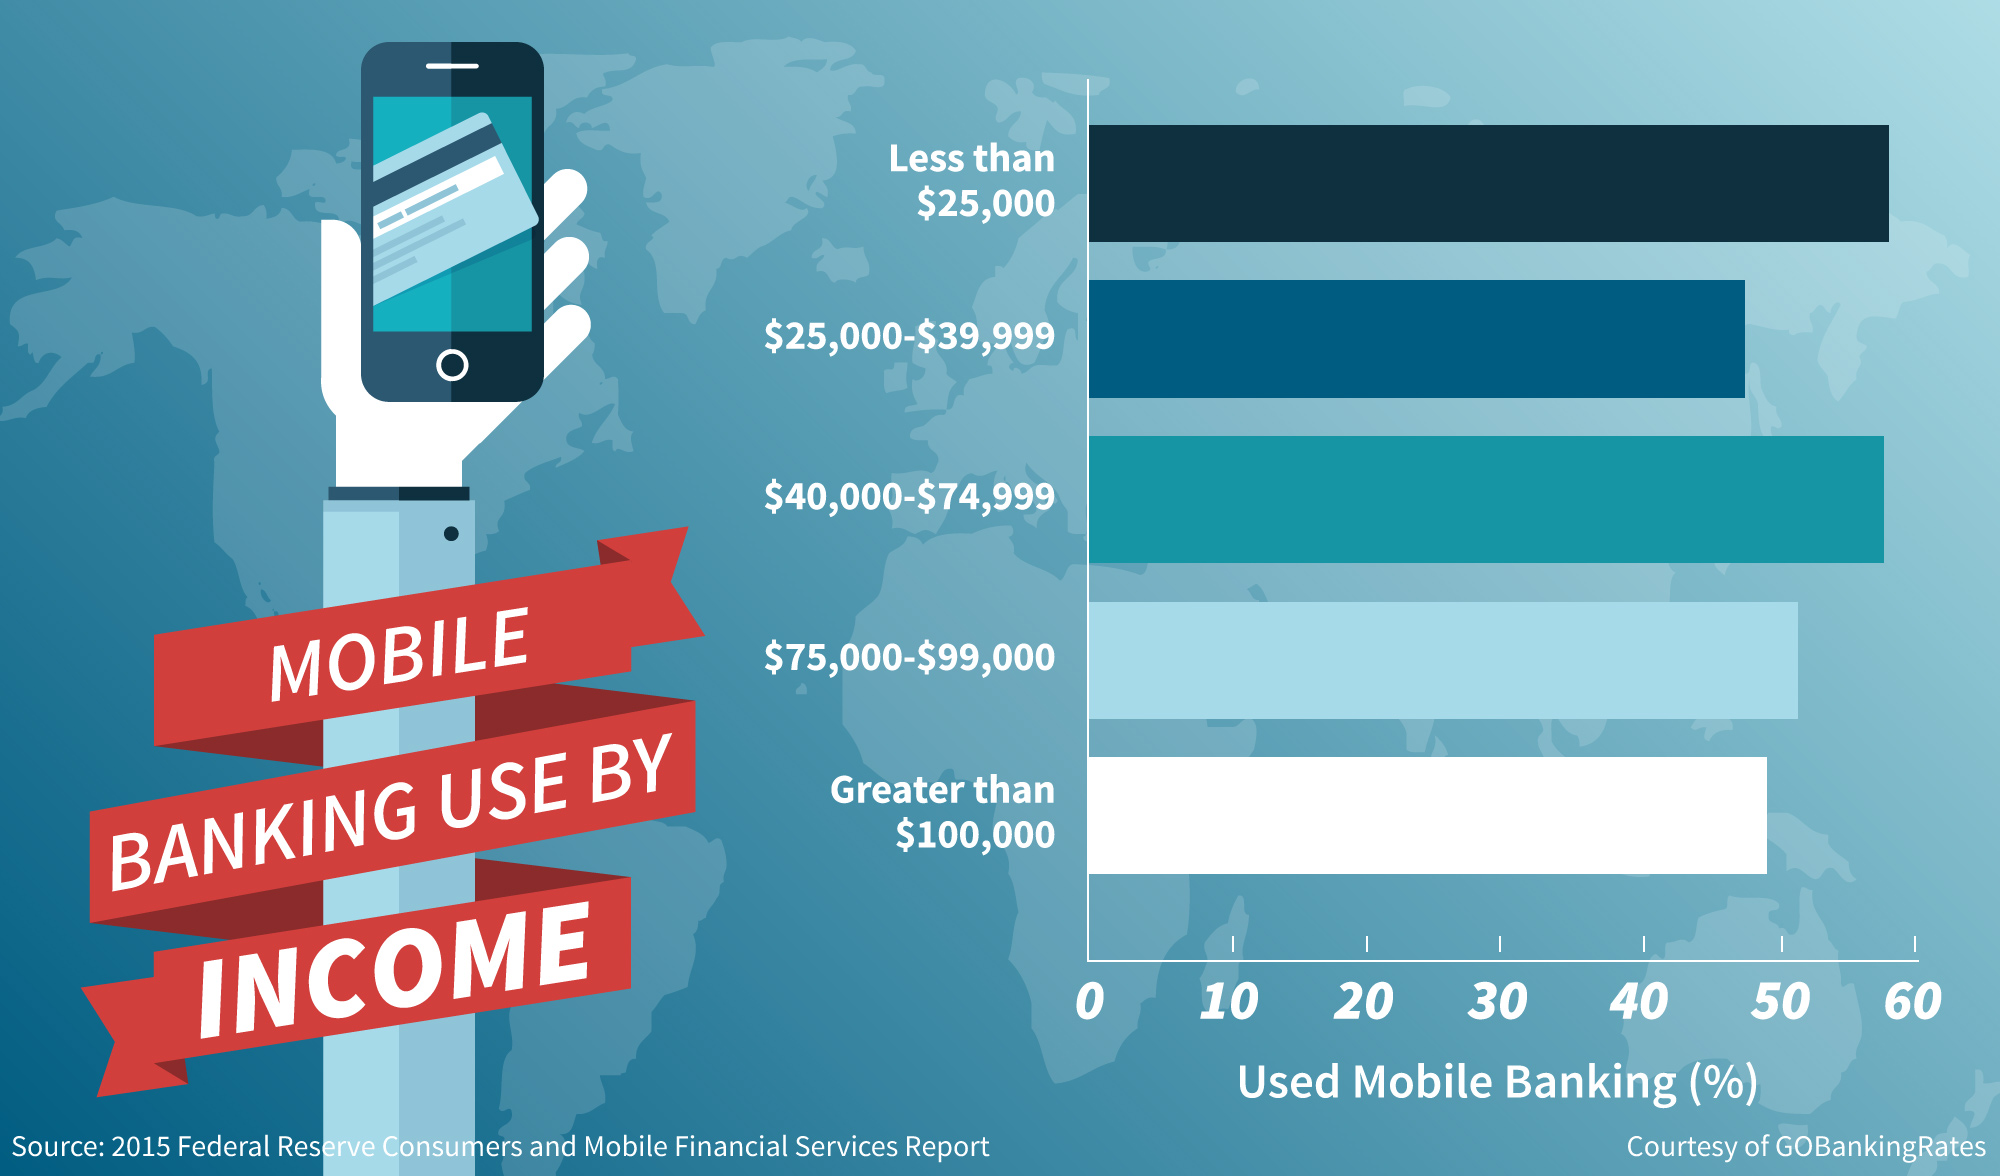 History of Online Banking - mobile banking users by income level